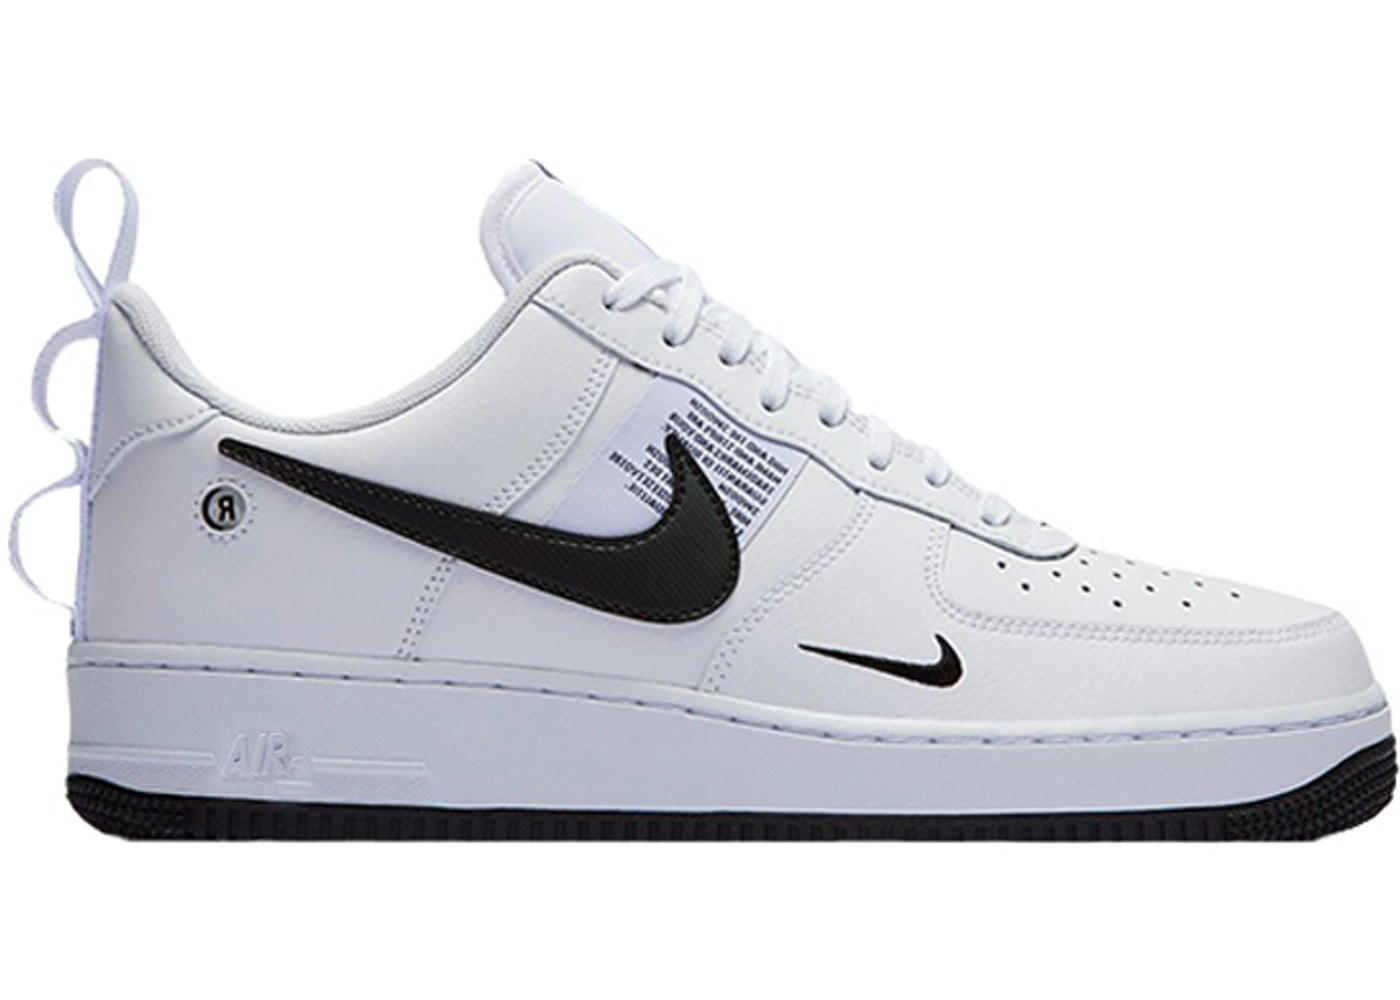 meet beauty incredible prices Air Force One LV8 UL Utility White